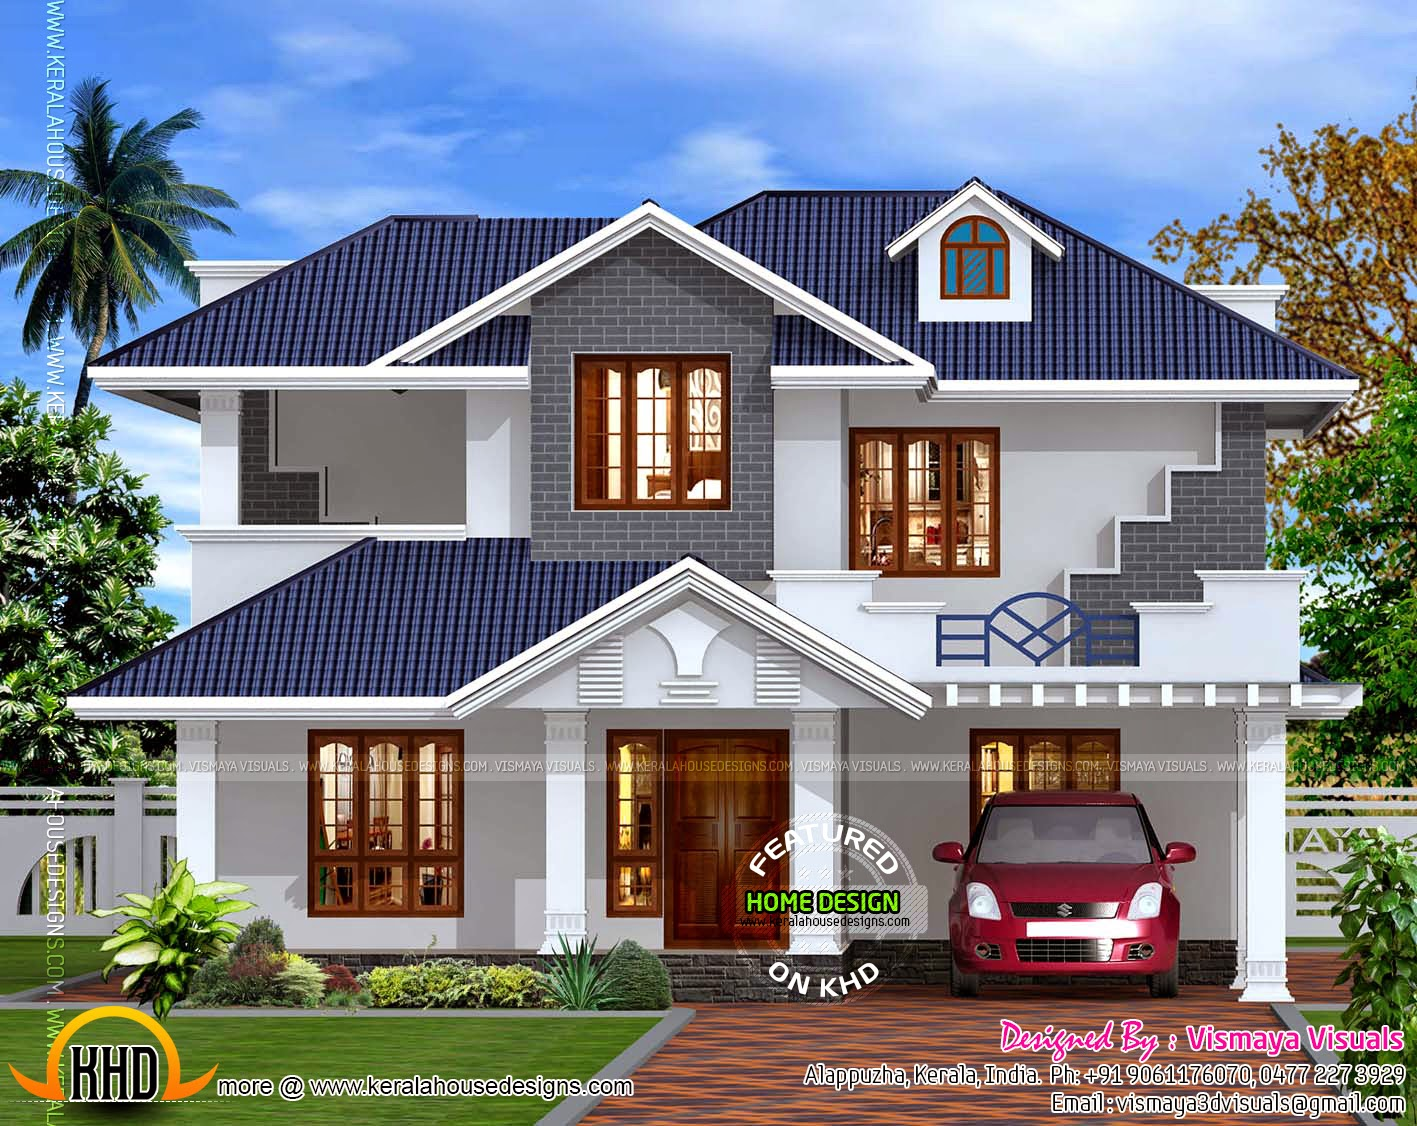 Kerala Style Home Of December 2014 Kerala Home Design And Floor Plans